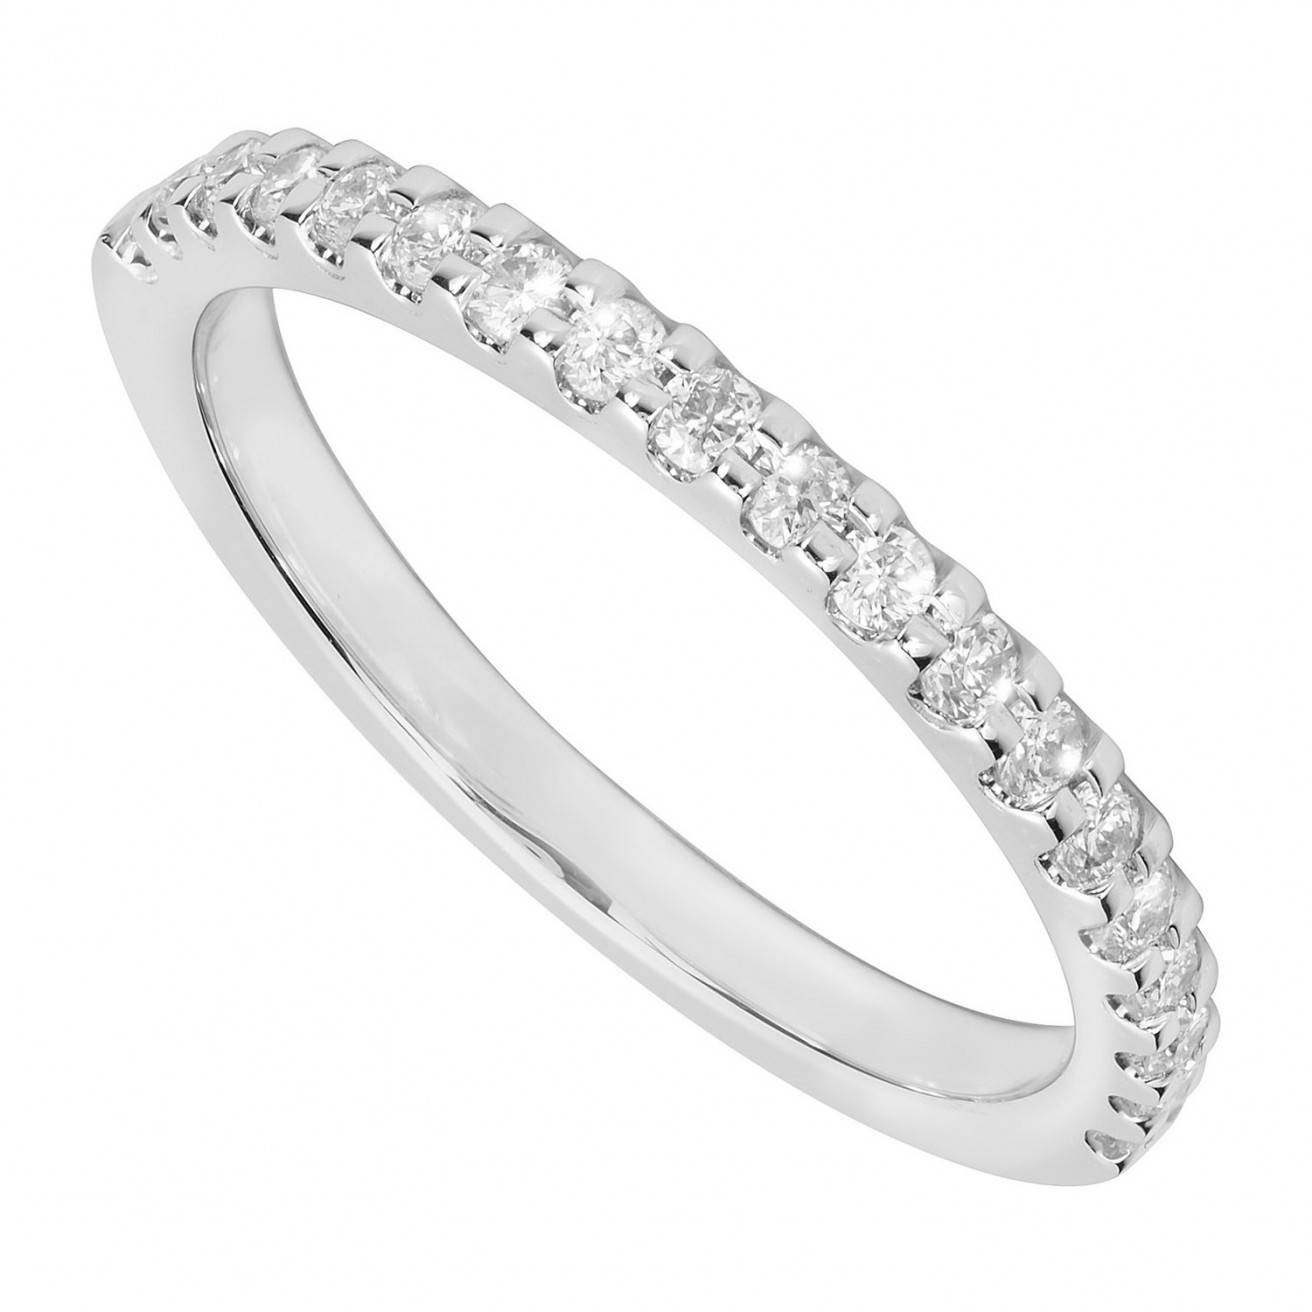 Buy Platinum Wedding Bands Online – Fraser Hart Intended For Diamond Platinum Wedding Rings (View 2 of 15)